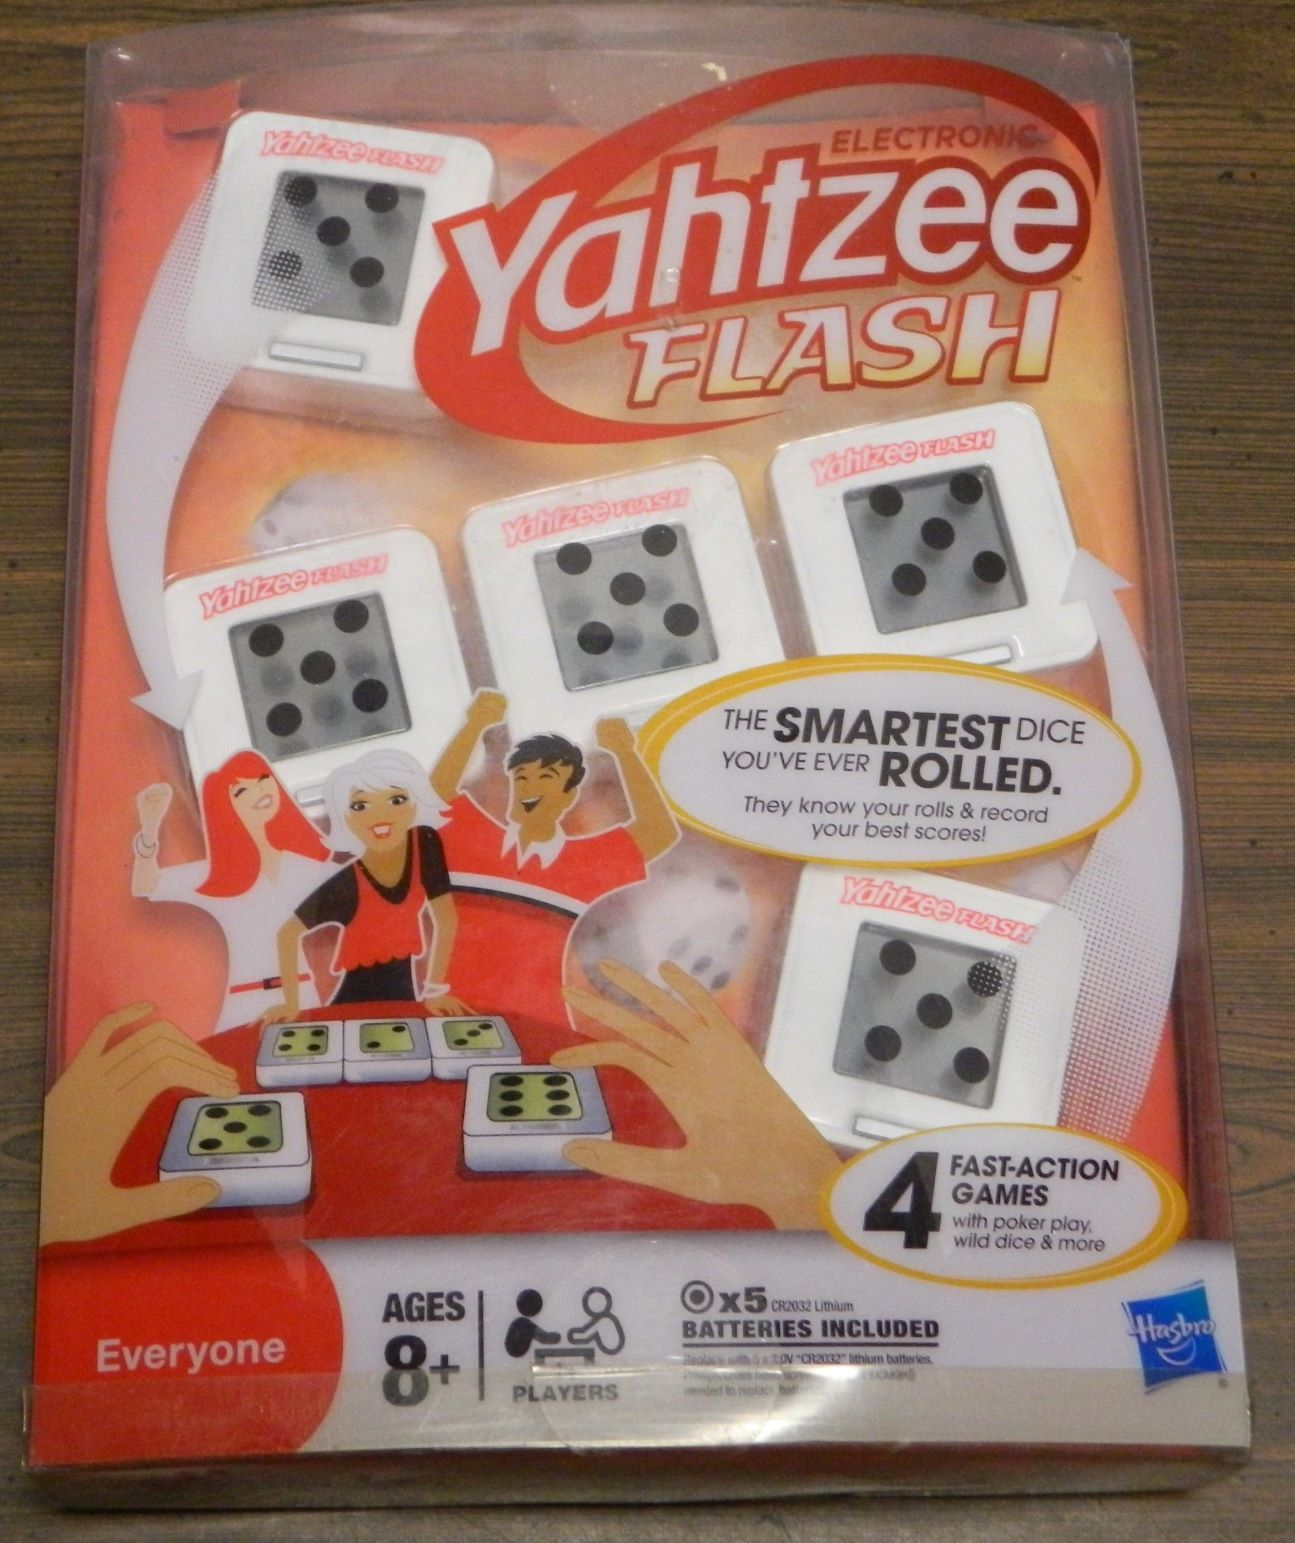 Box for Yahtzee Flash